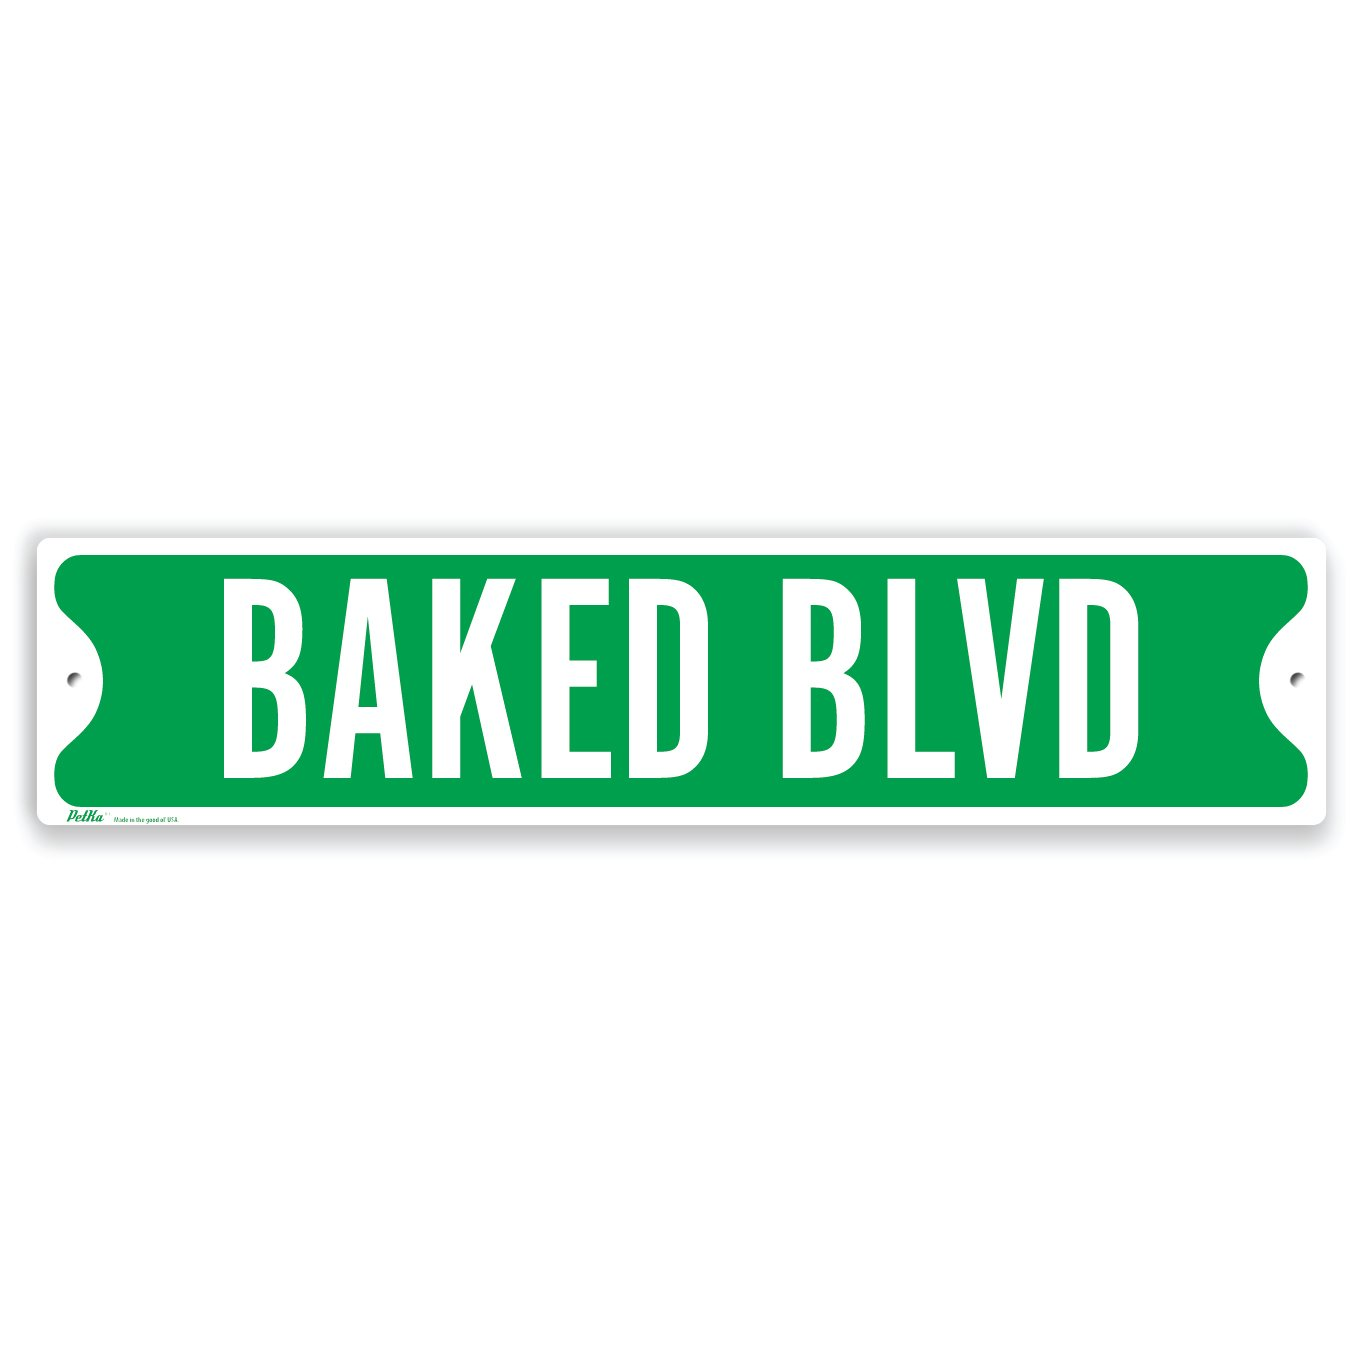 PetKa Signs and Graphics PKSS-0020-NA_18x4''Baked BLVD'' Aluminum Sign, 18'' x 4'', White on Green by Petka Signs and Graphics